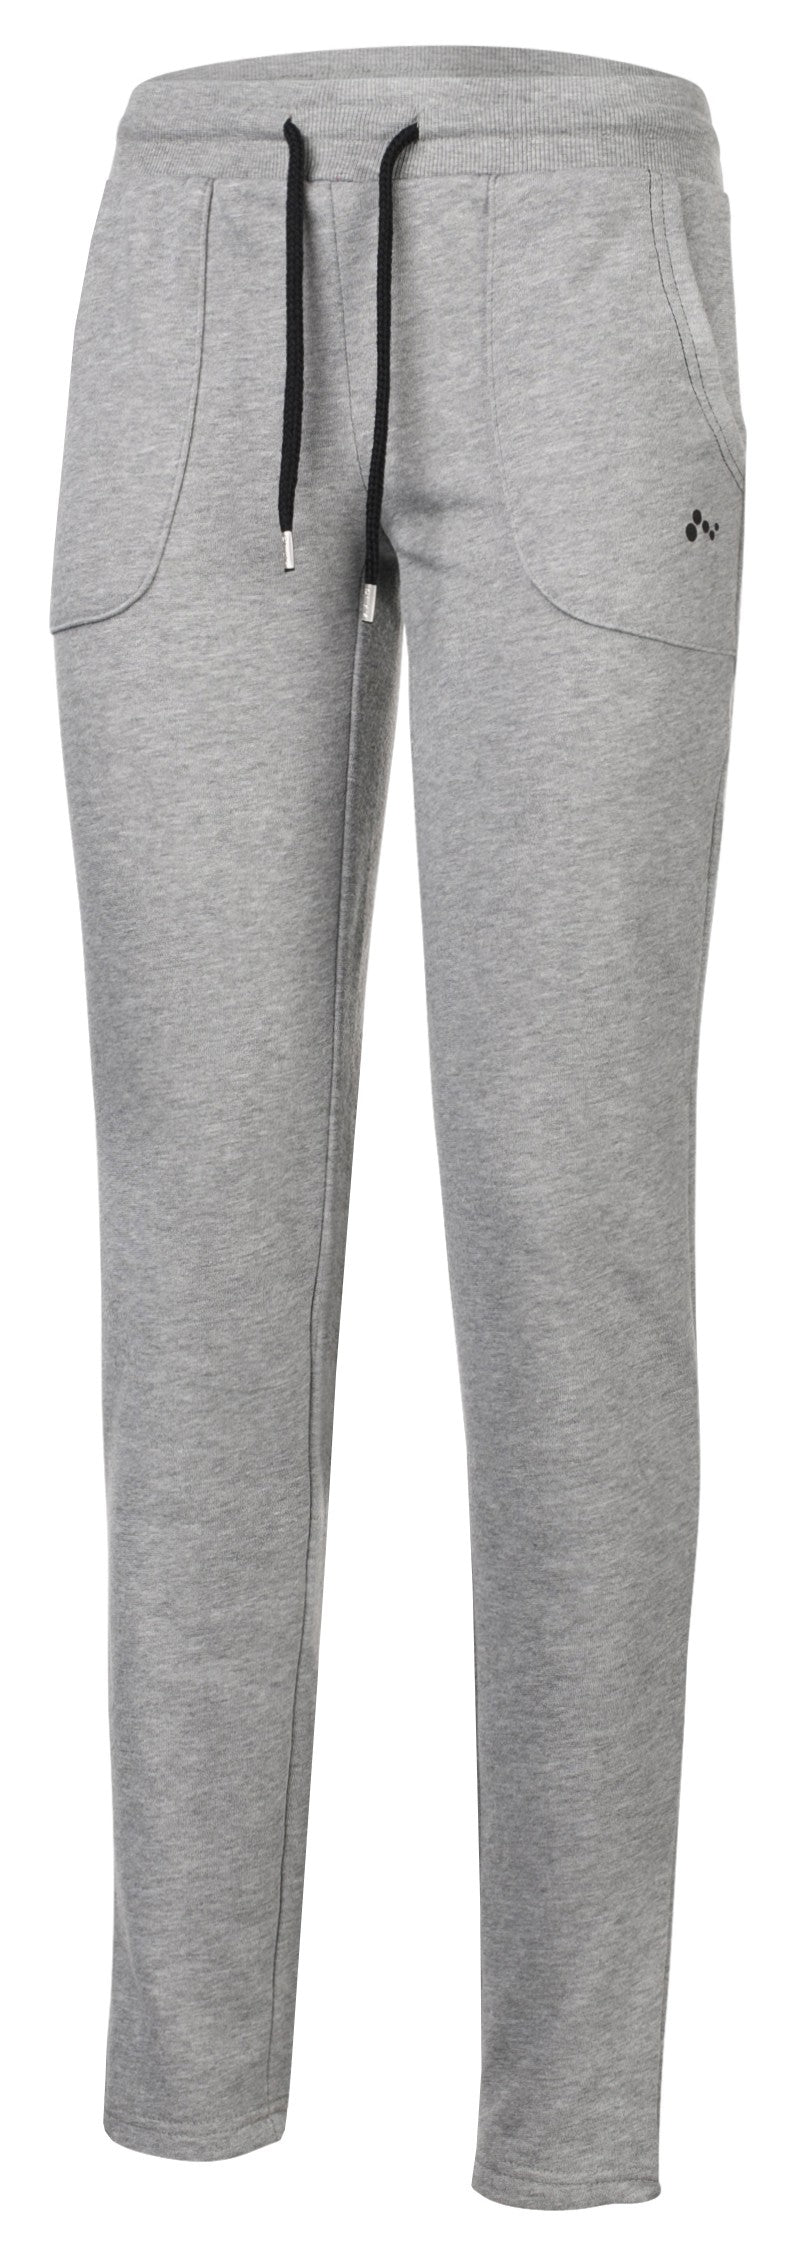 Pant-GERTRUDE SWEAT PANT LIGHT GREY MELANGE